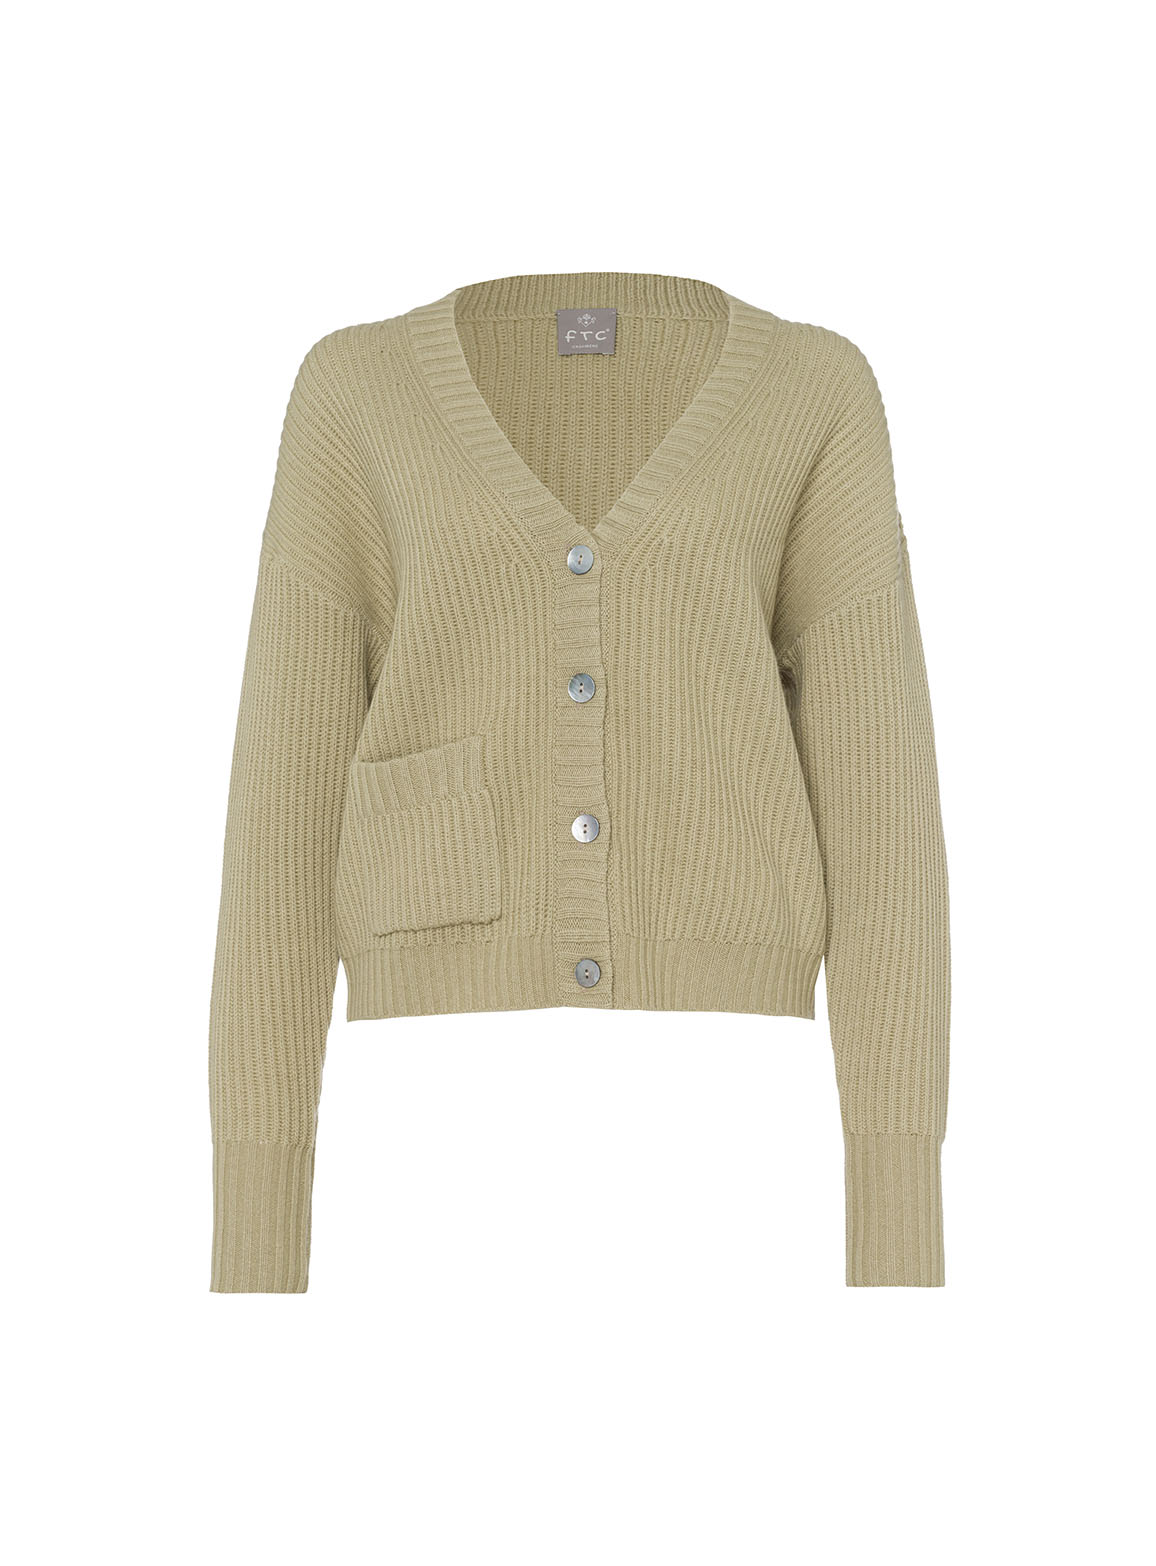 Ribbed Cardigan with pocket